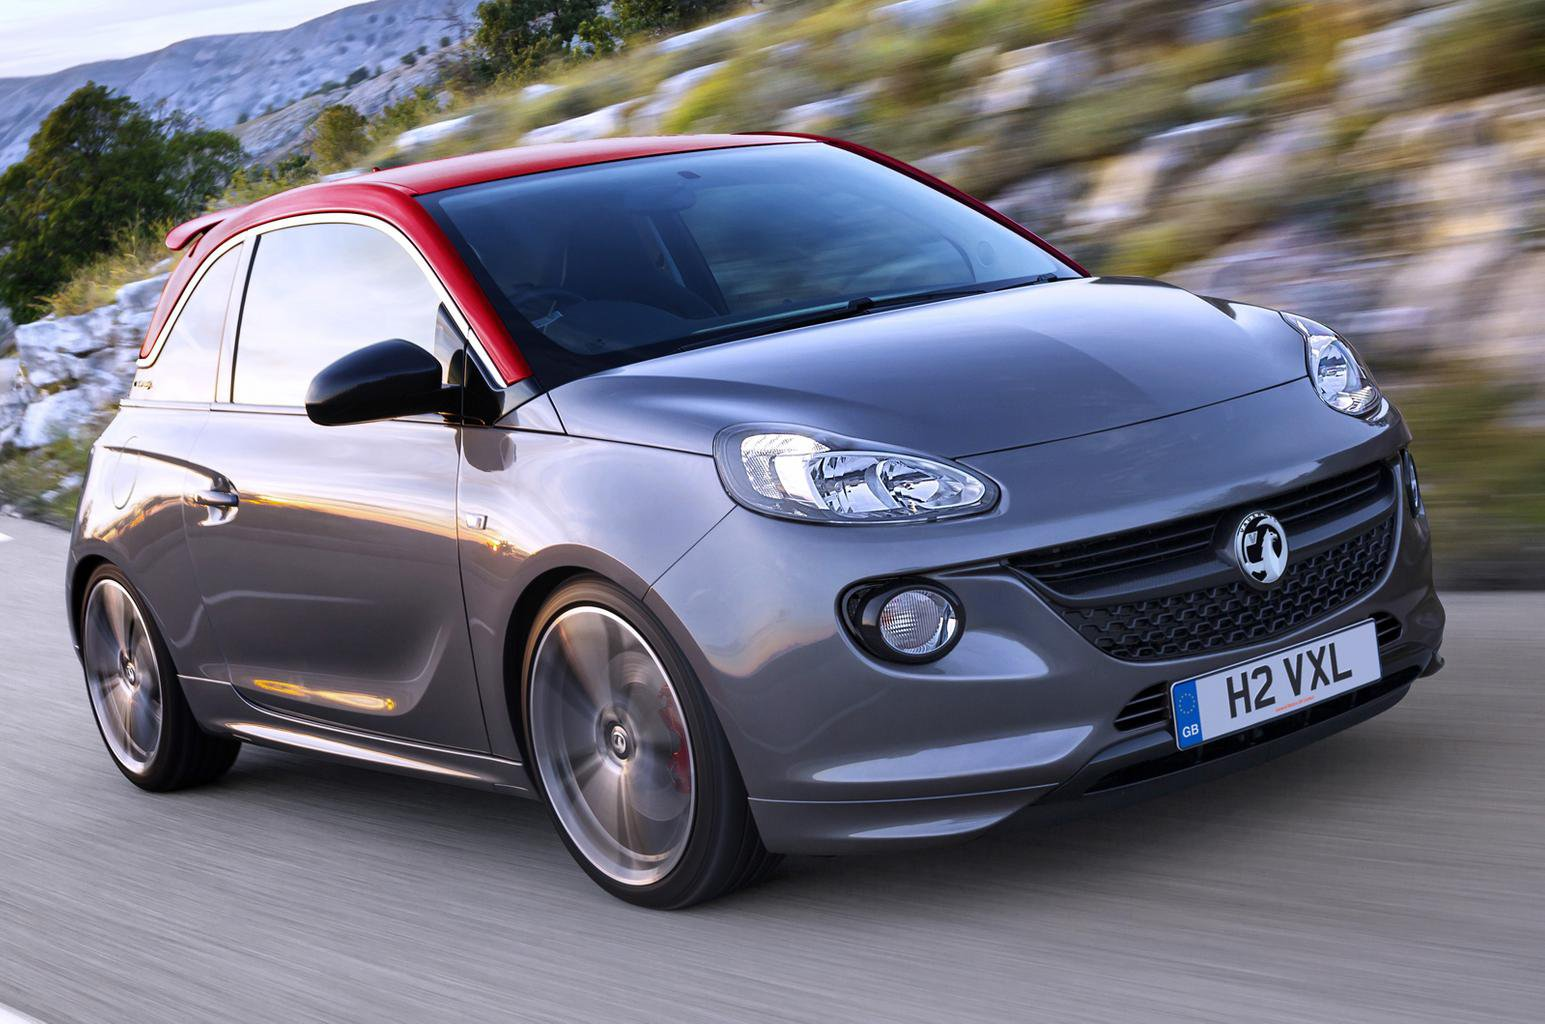 2015 Vauxhall Adam S name change - details, price, on-sale date and engine